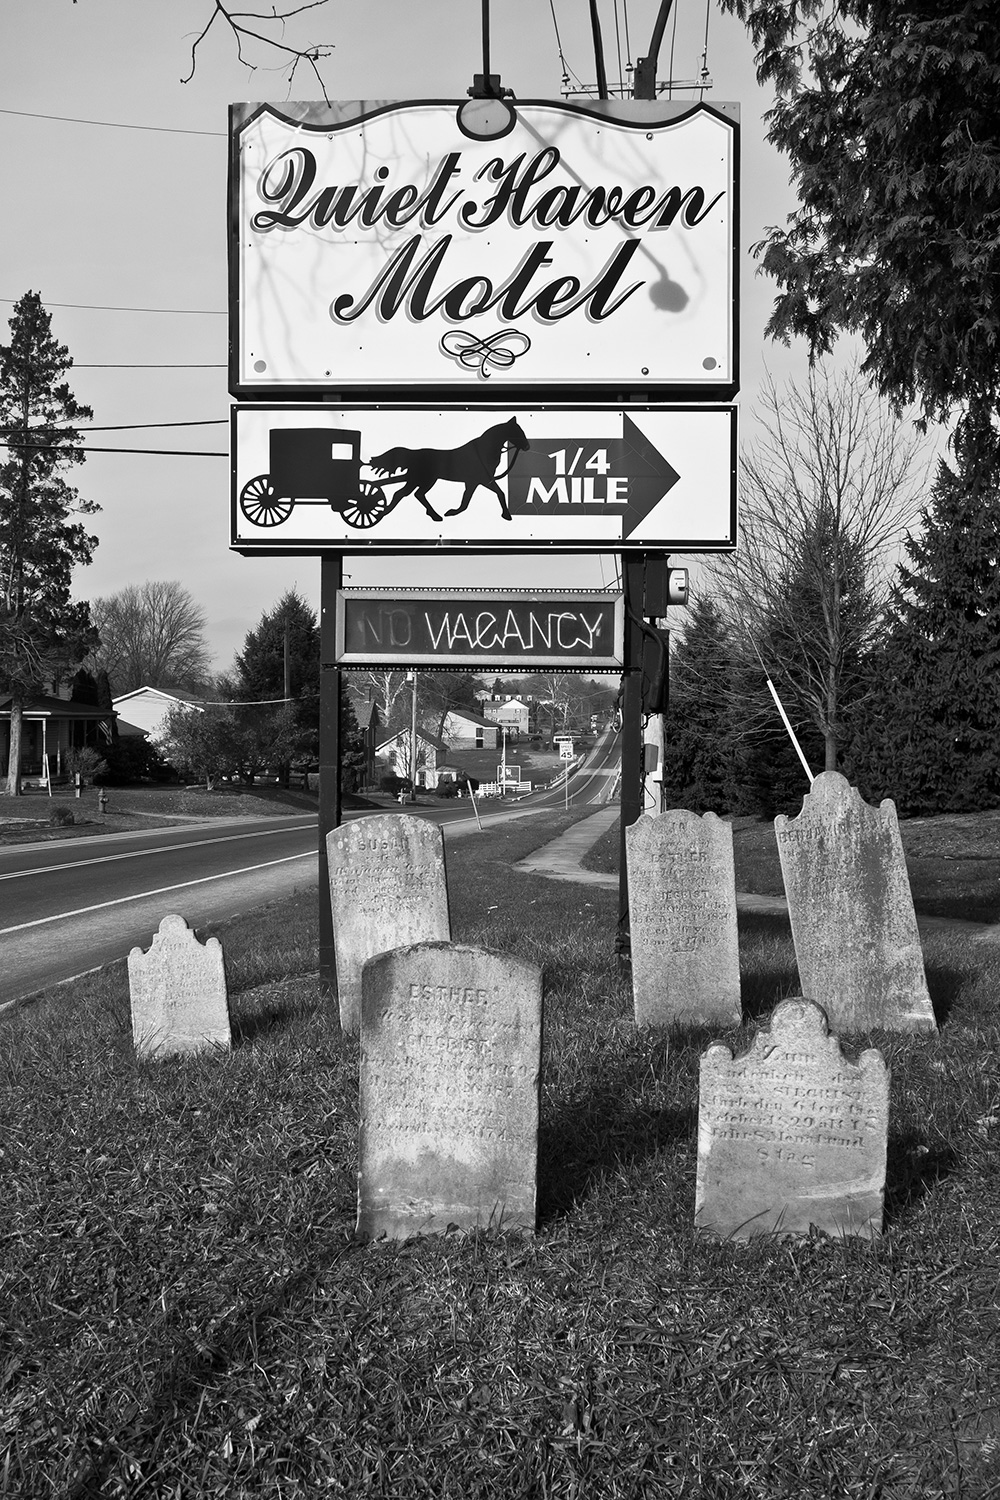 Quiet Haven Motel